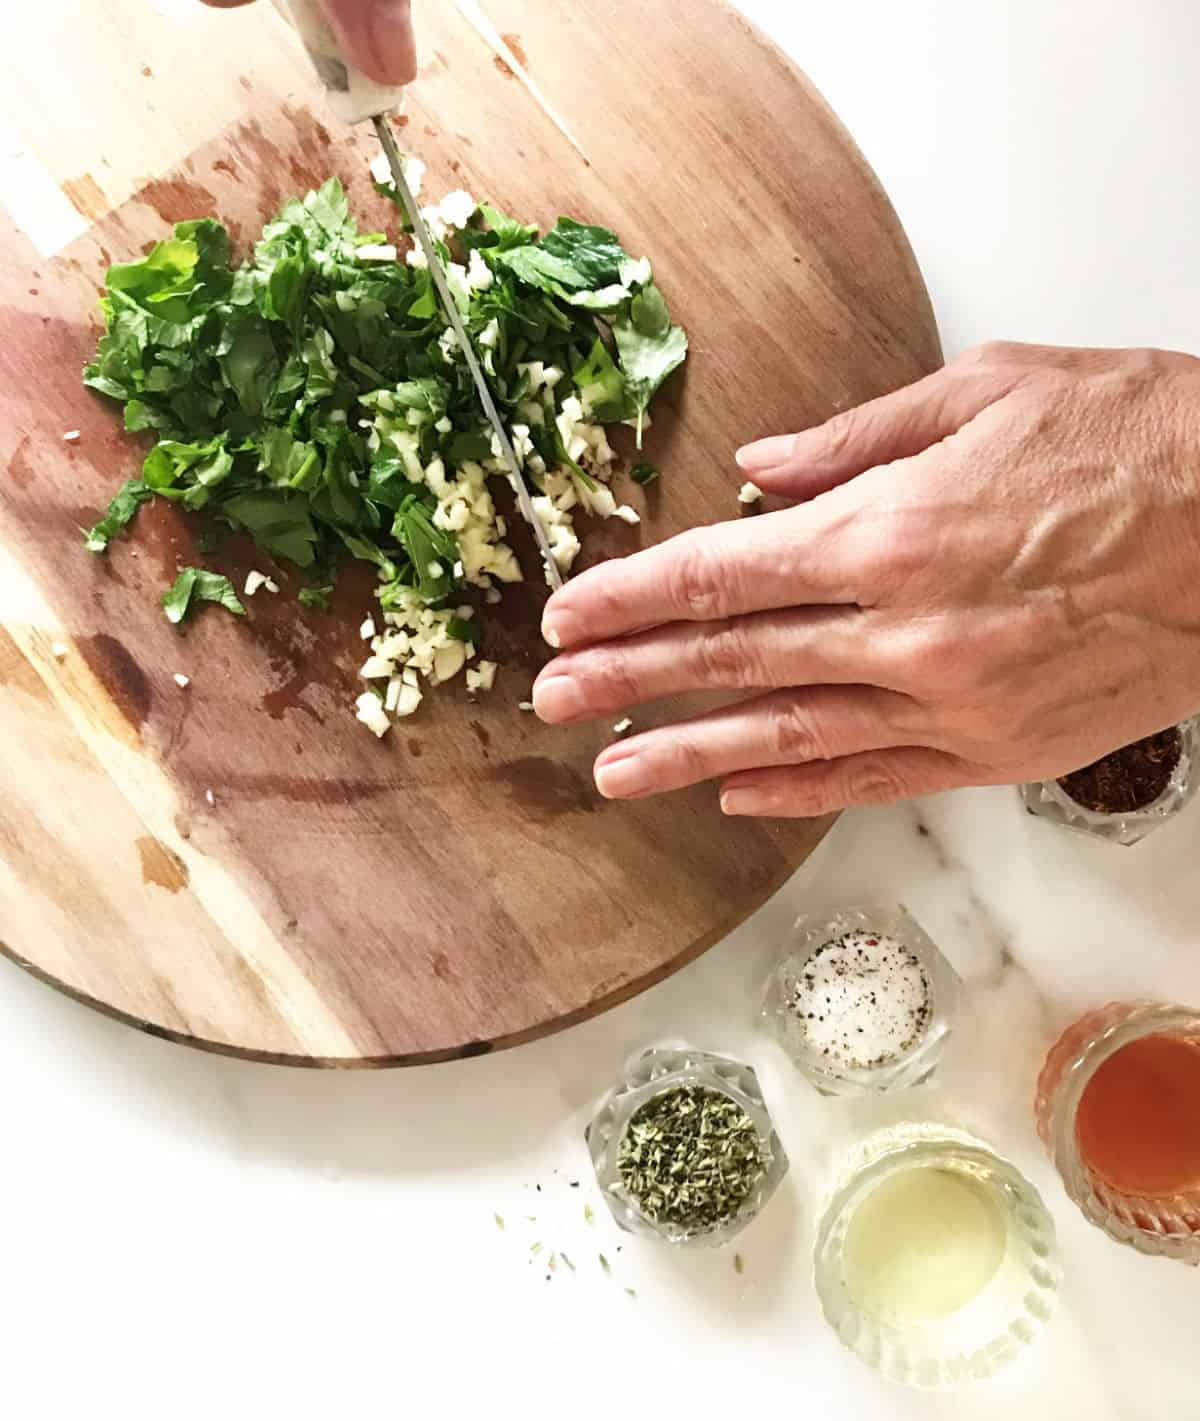 Hands chopping parlesy and garlic on wooden board, white table with more ingredients